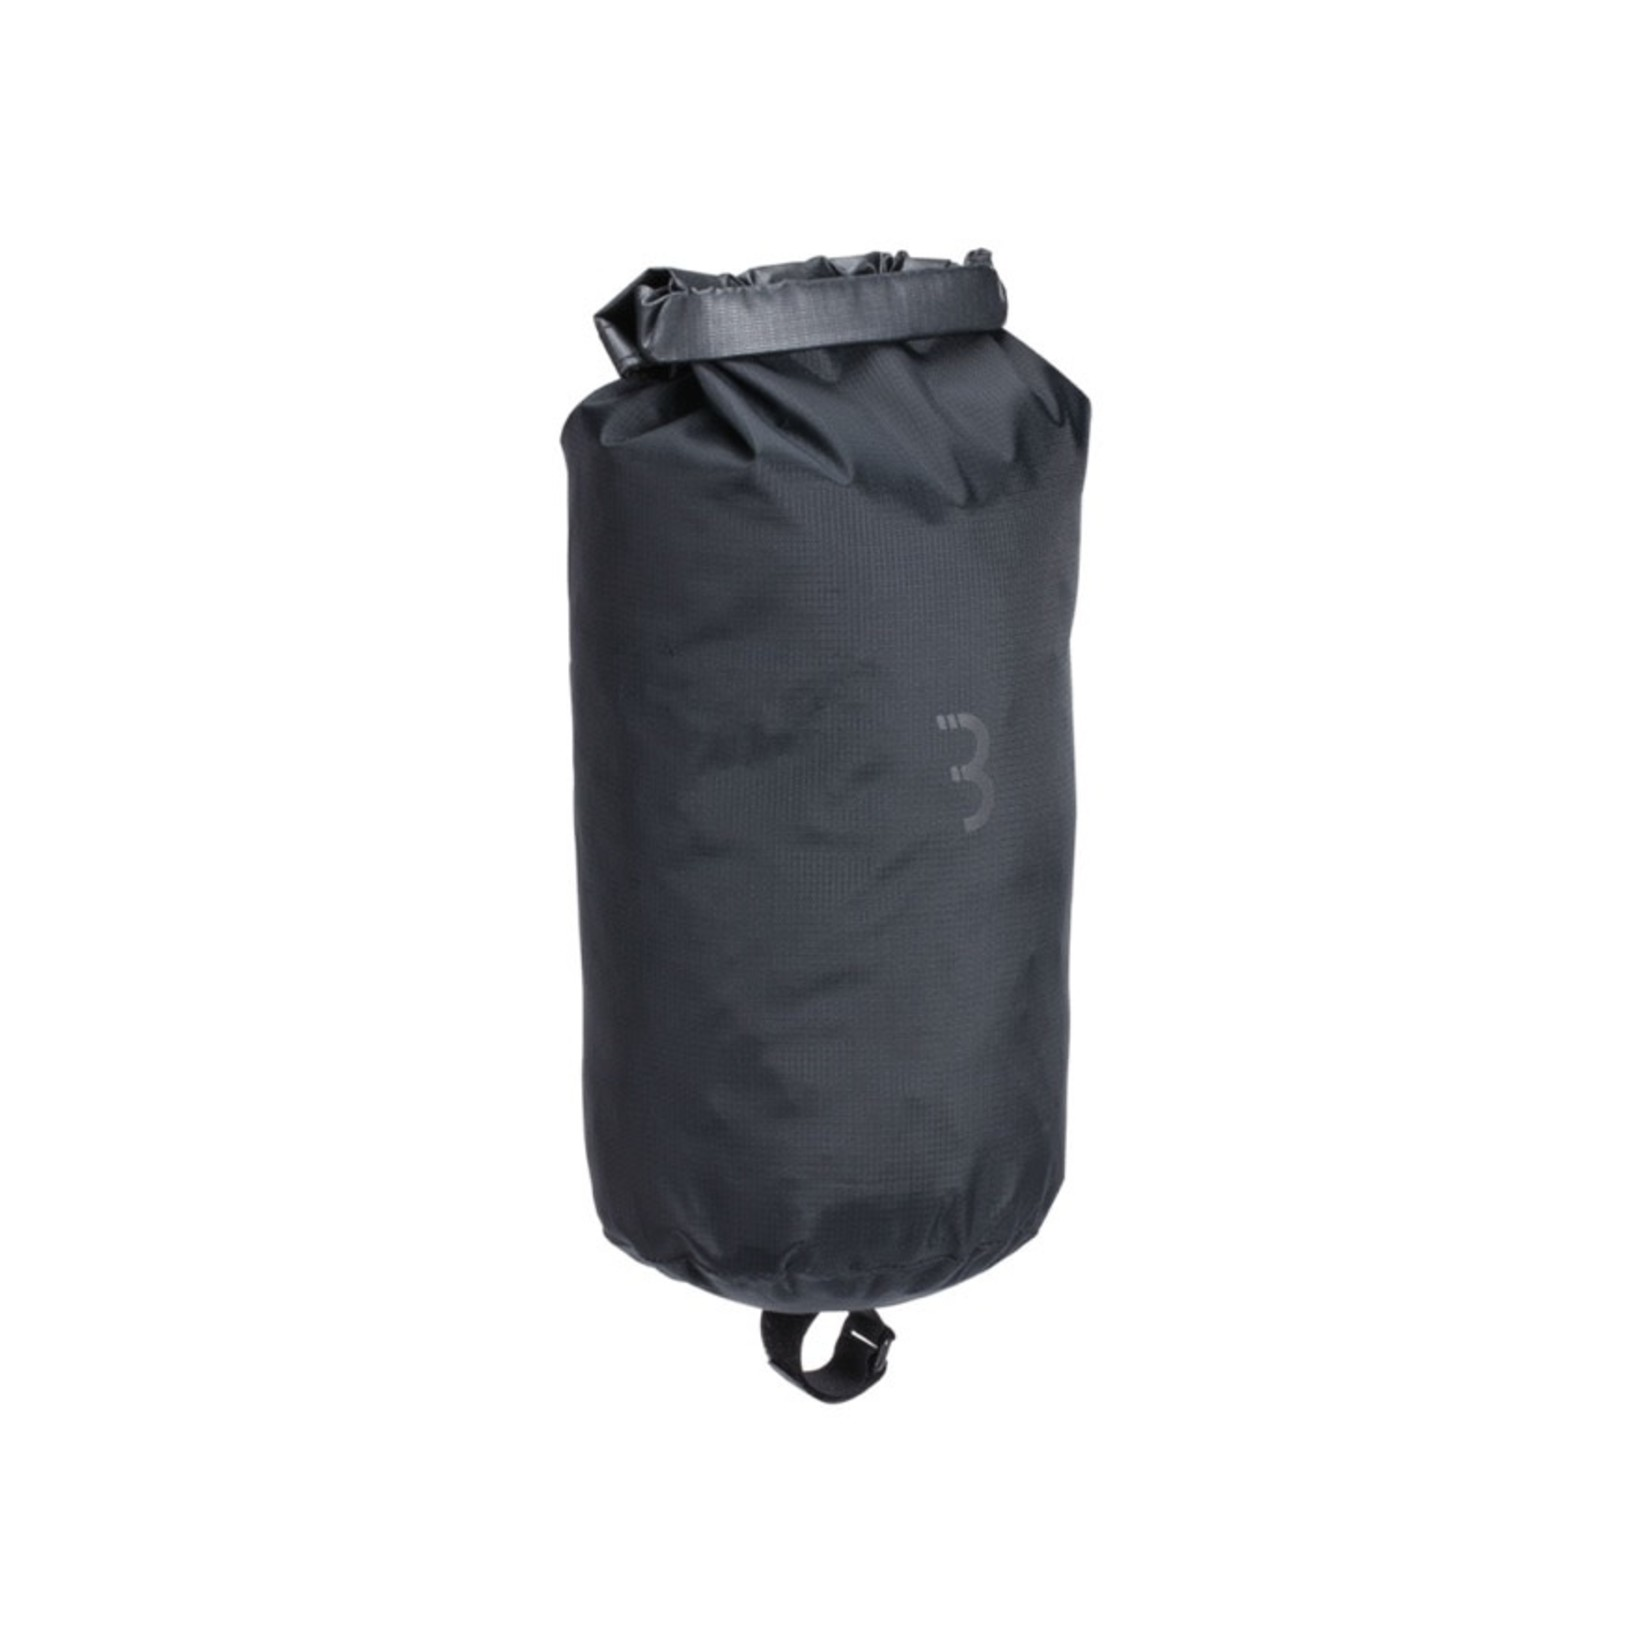 BBB Frame Bags, StackPack, Cargo Cage w/Dry Bag